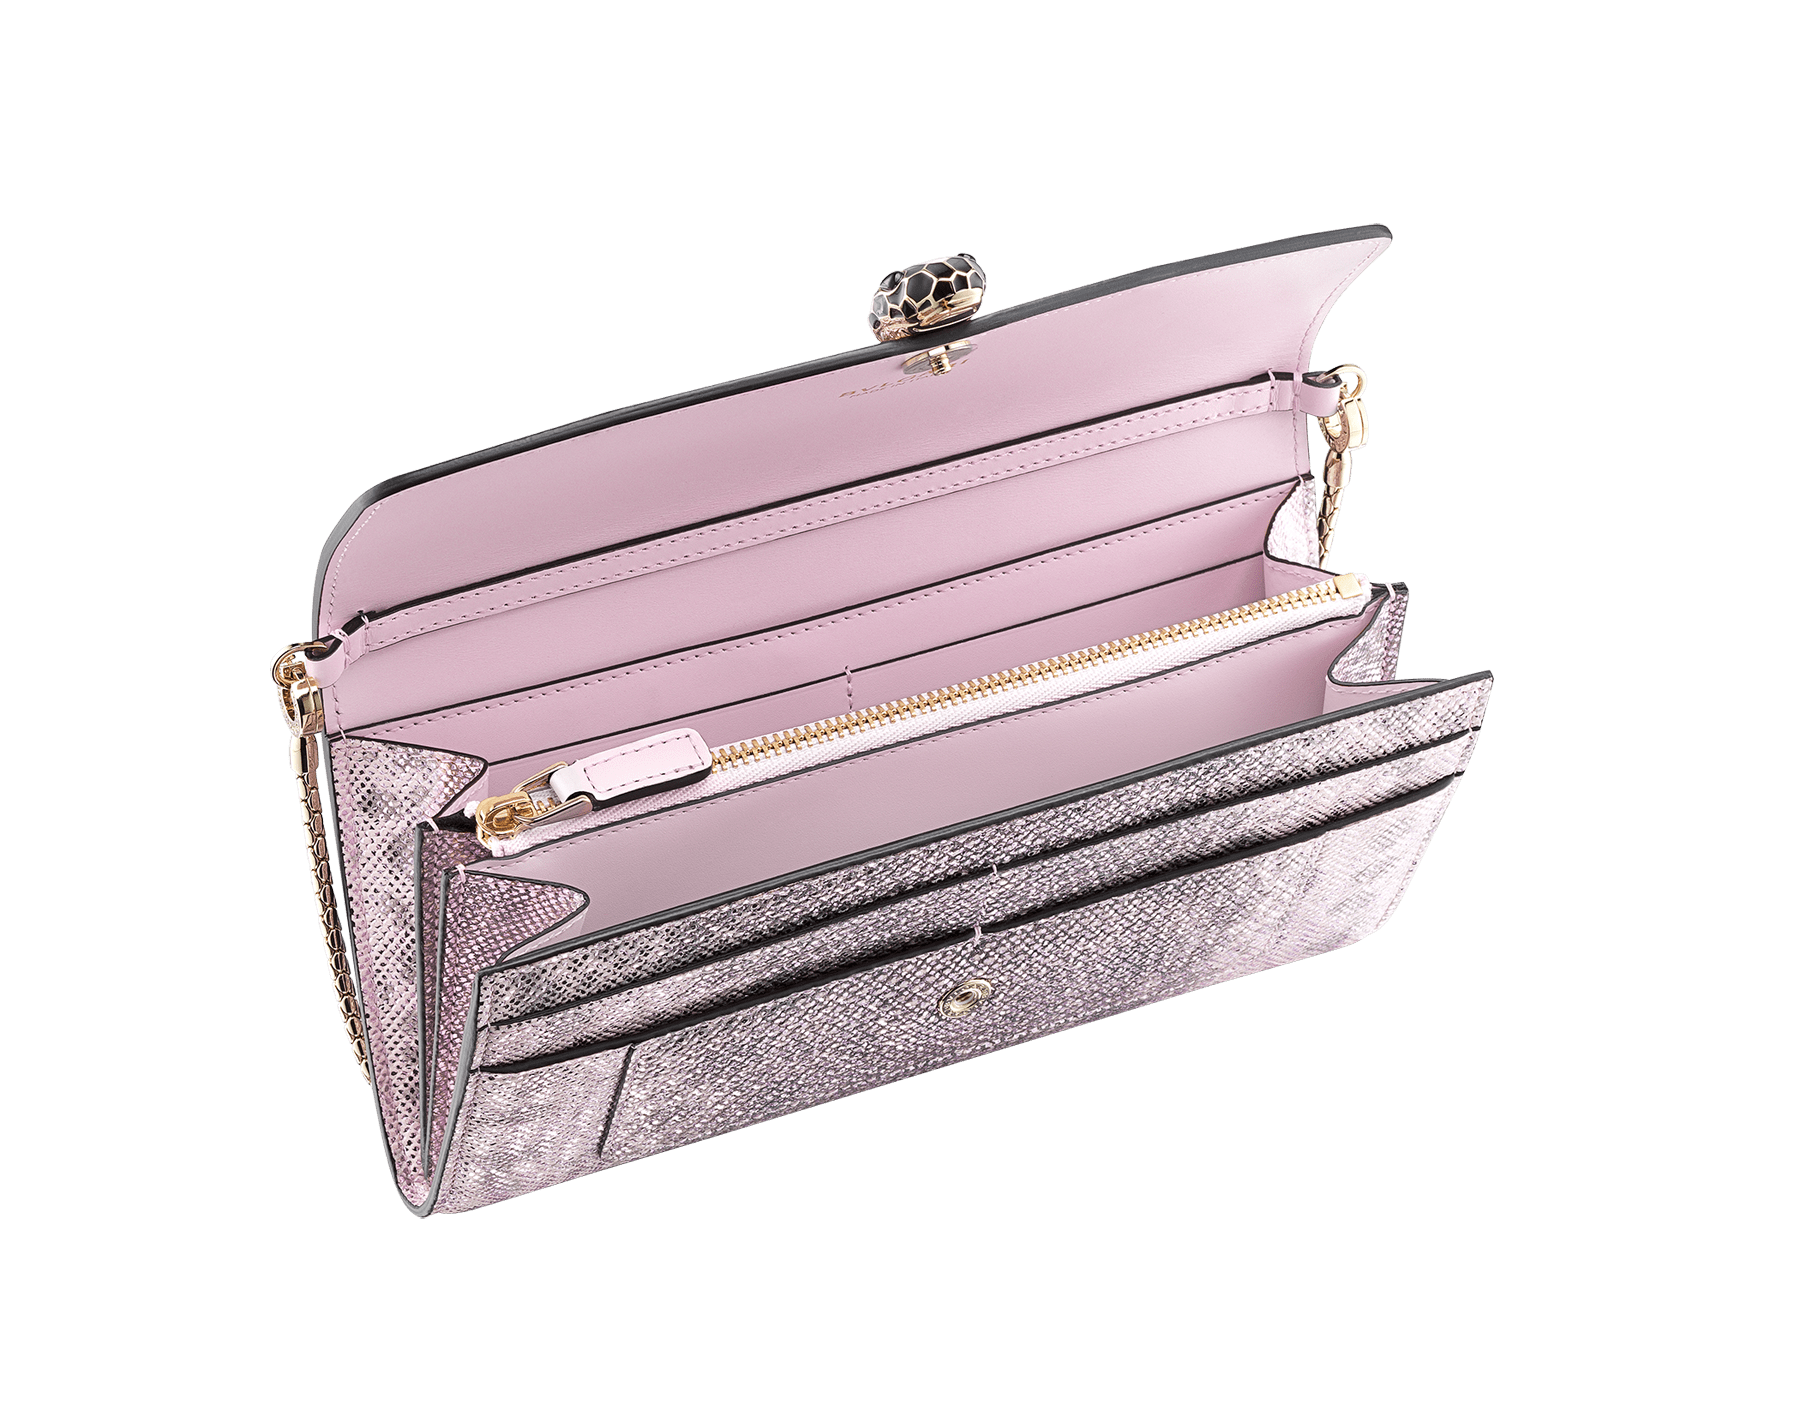 Serpenti Forever wallet pouch in rosa di francia metallic karung skin and rosa di francia calf leather. Iconic snakehead charm in black and rosa di francia enamel, with black onyx eyes. SEA-WLT-LONGCHAIN-MK image 2